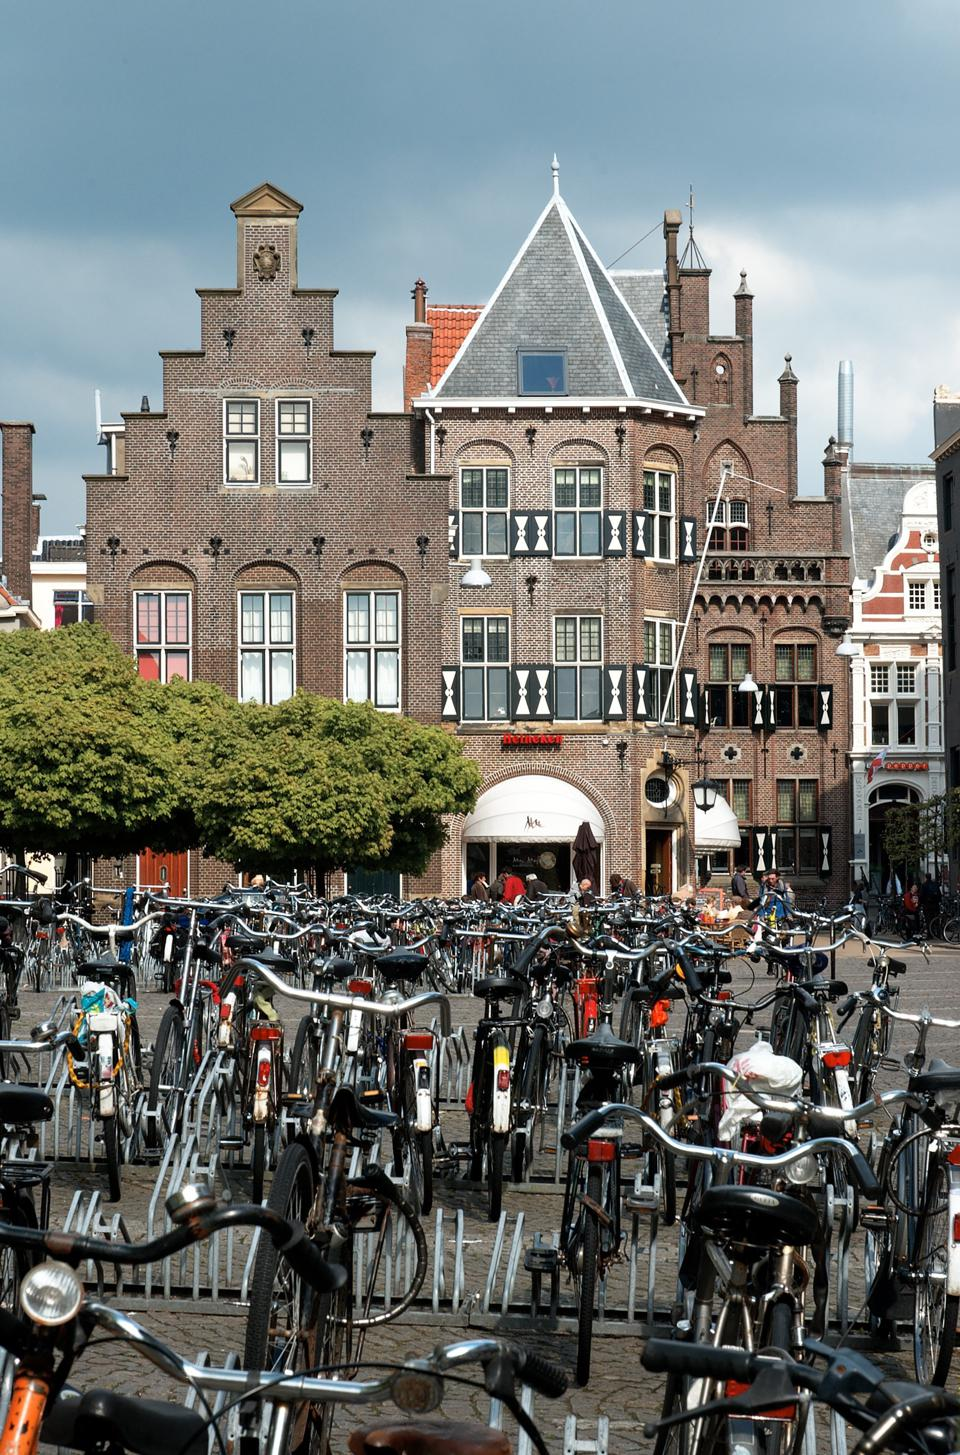 The Netherlands, Groningen center: bicycles in the Broerstraat, May 2, 2008